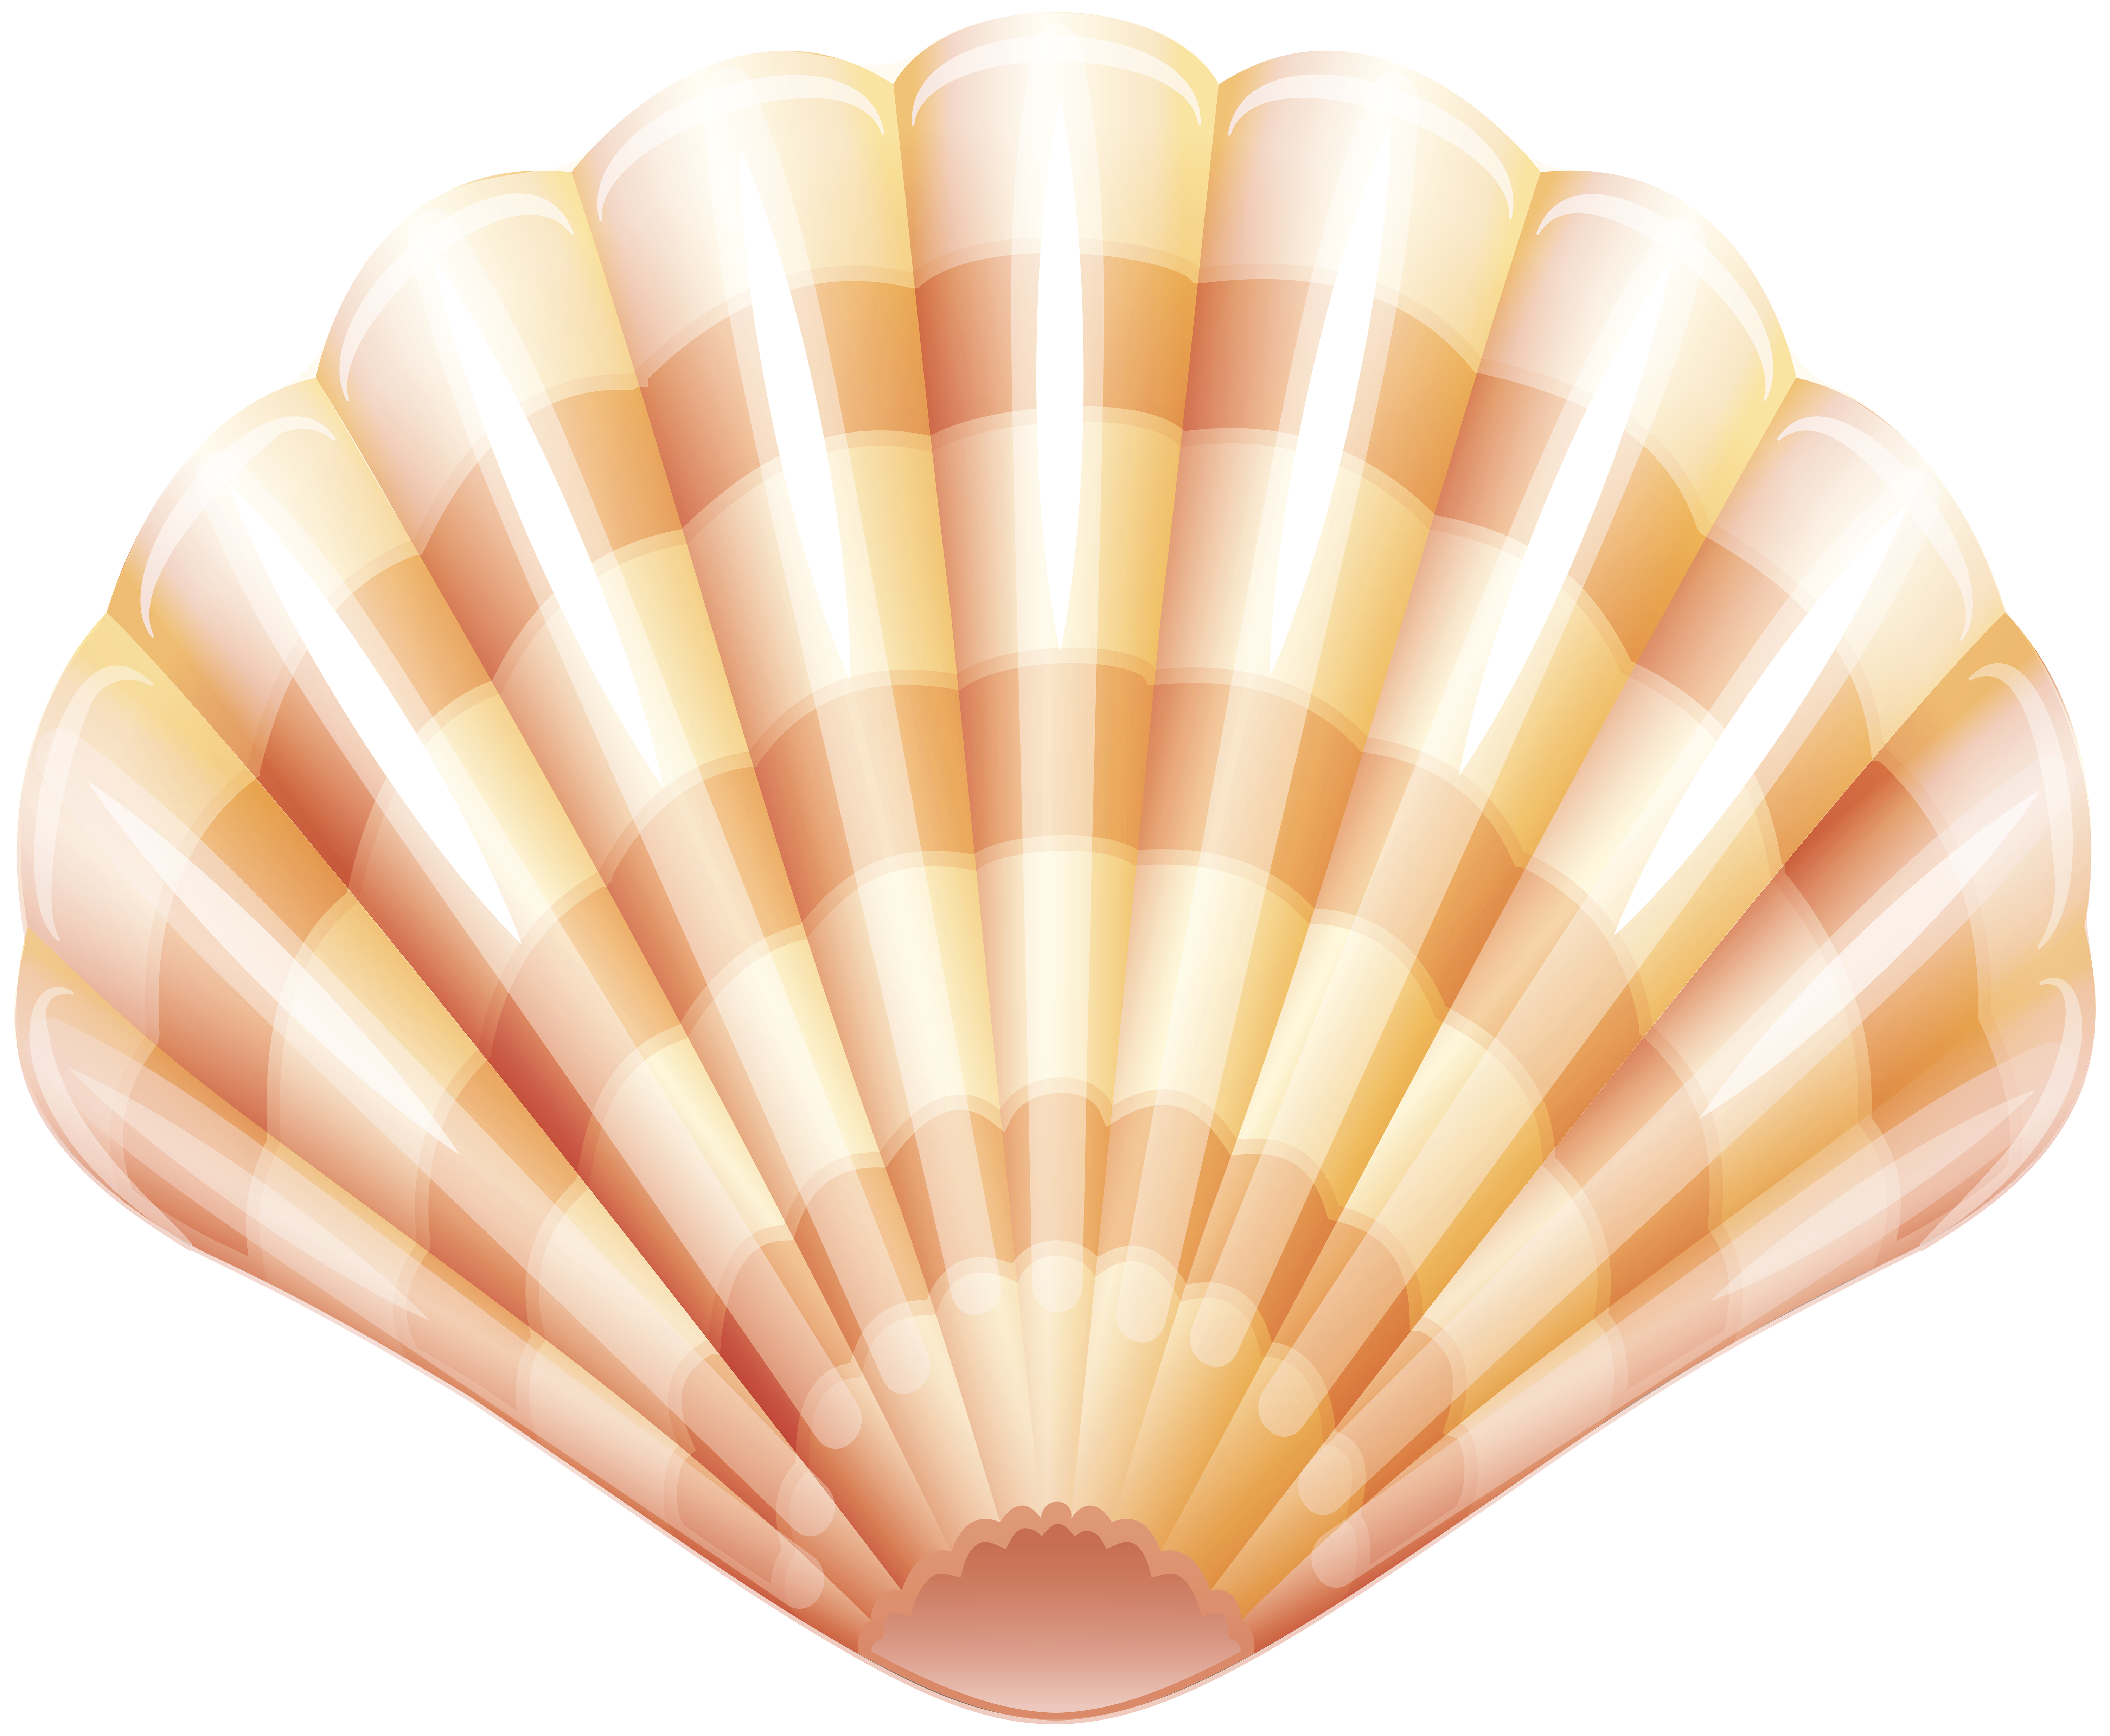 Clam vector shellfish. Seafood graphic royalty